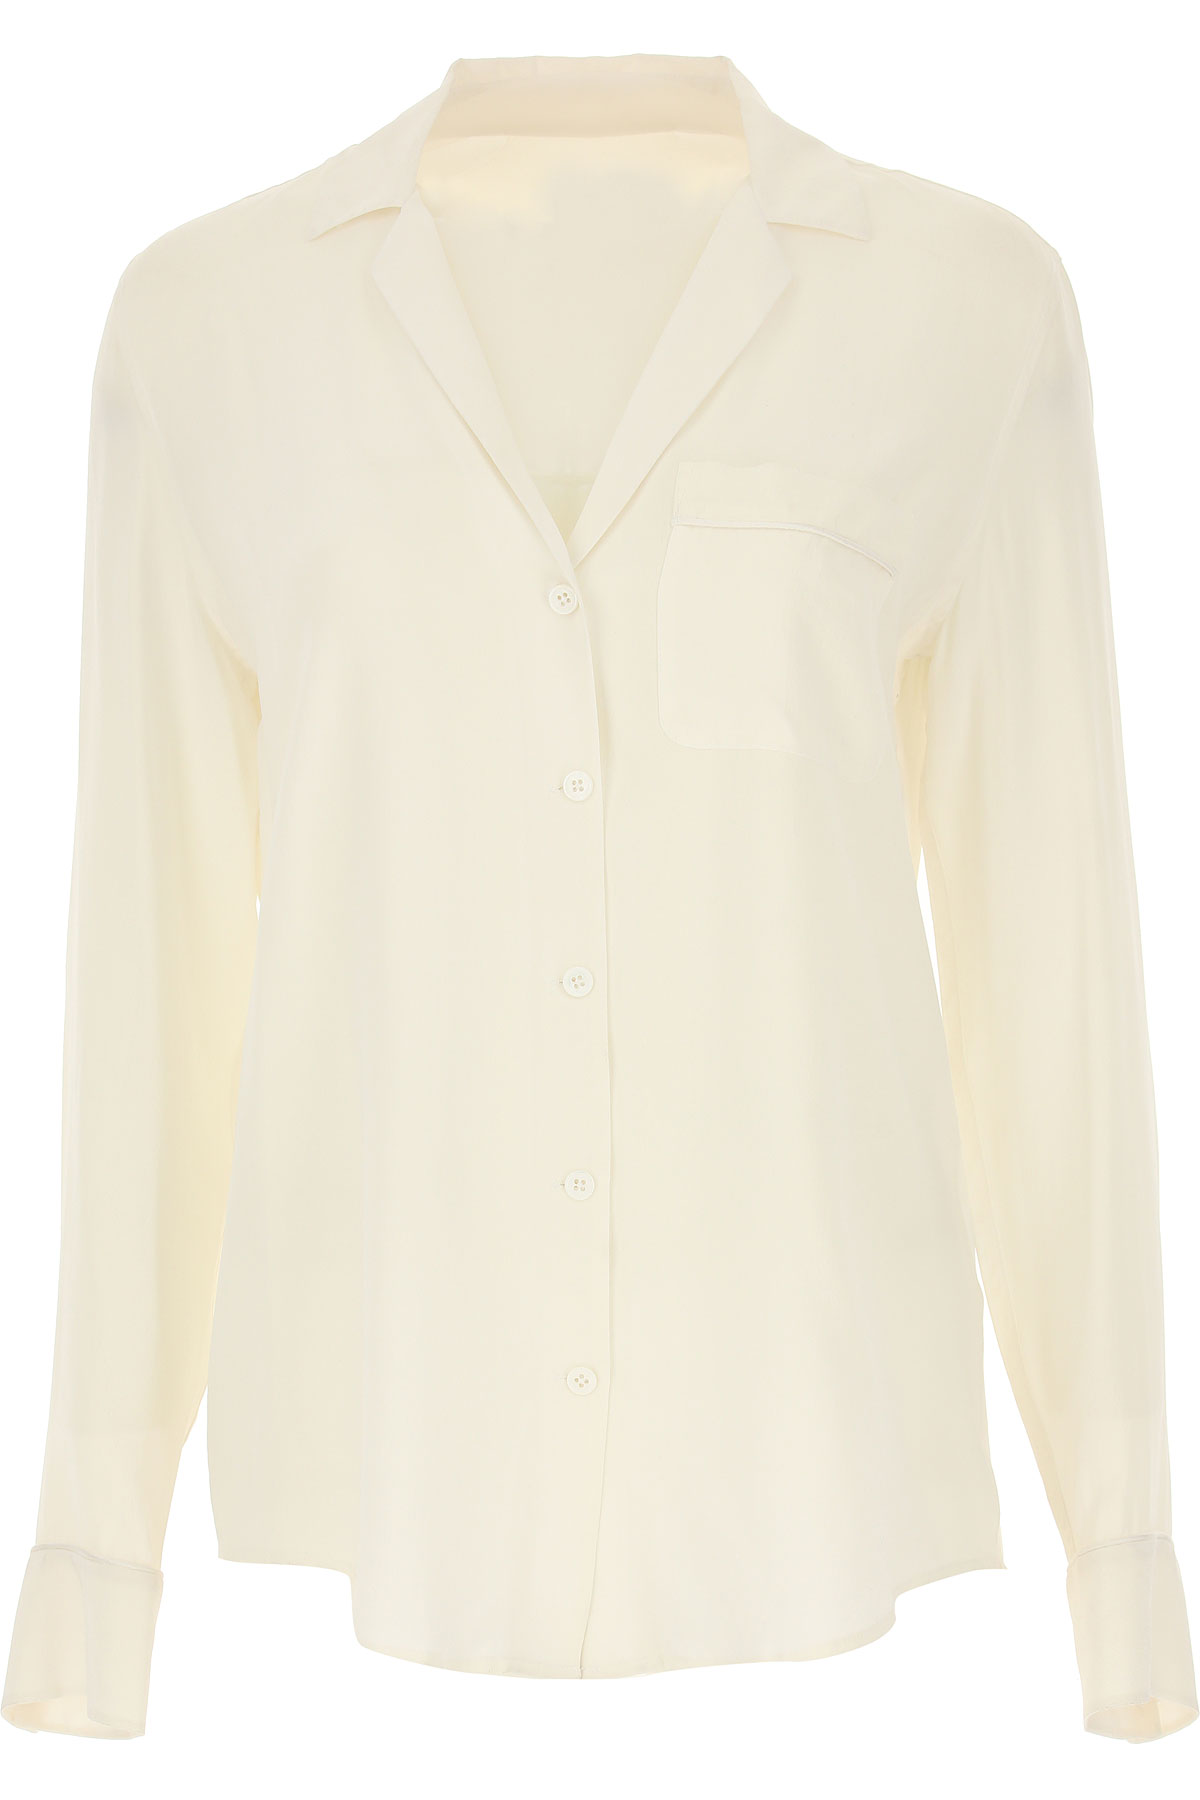 Image of Equipment Femme Shirt for Women, Bright White, Silk, 2017, 2 4 6 8